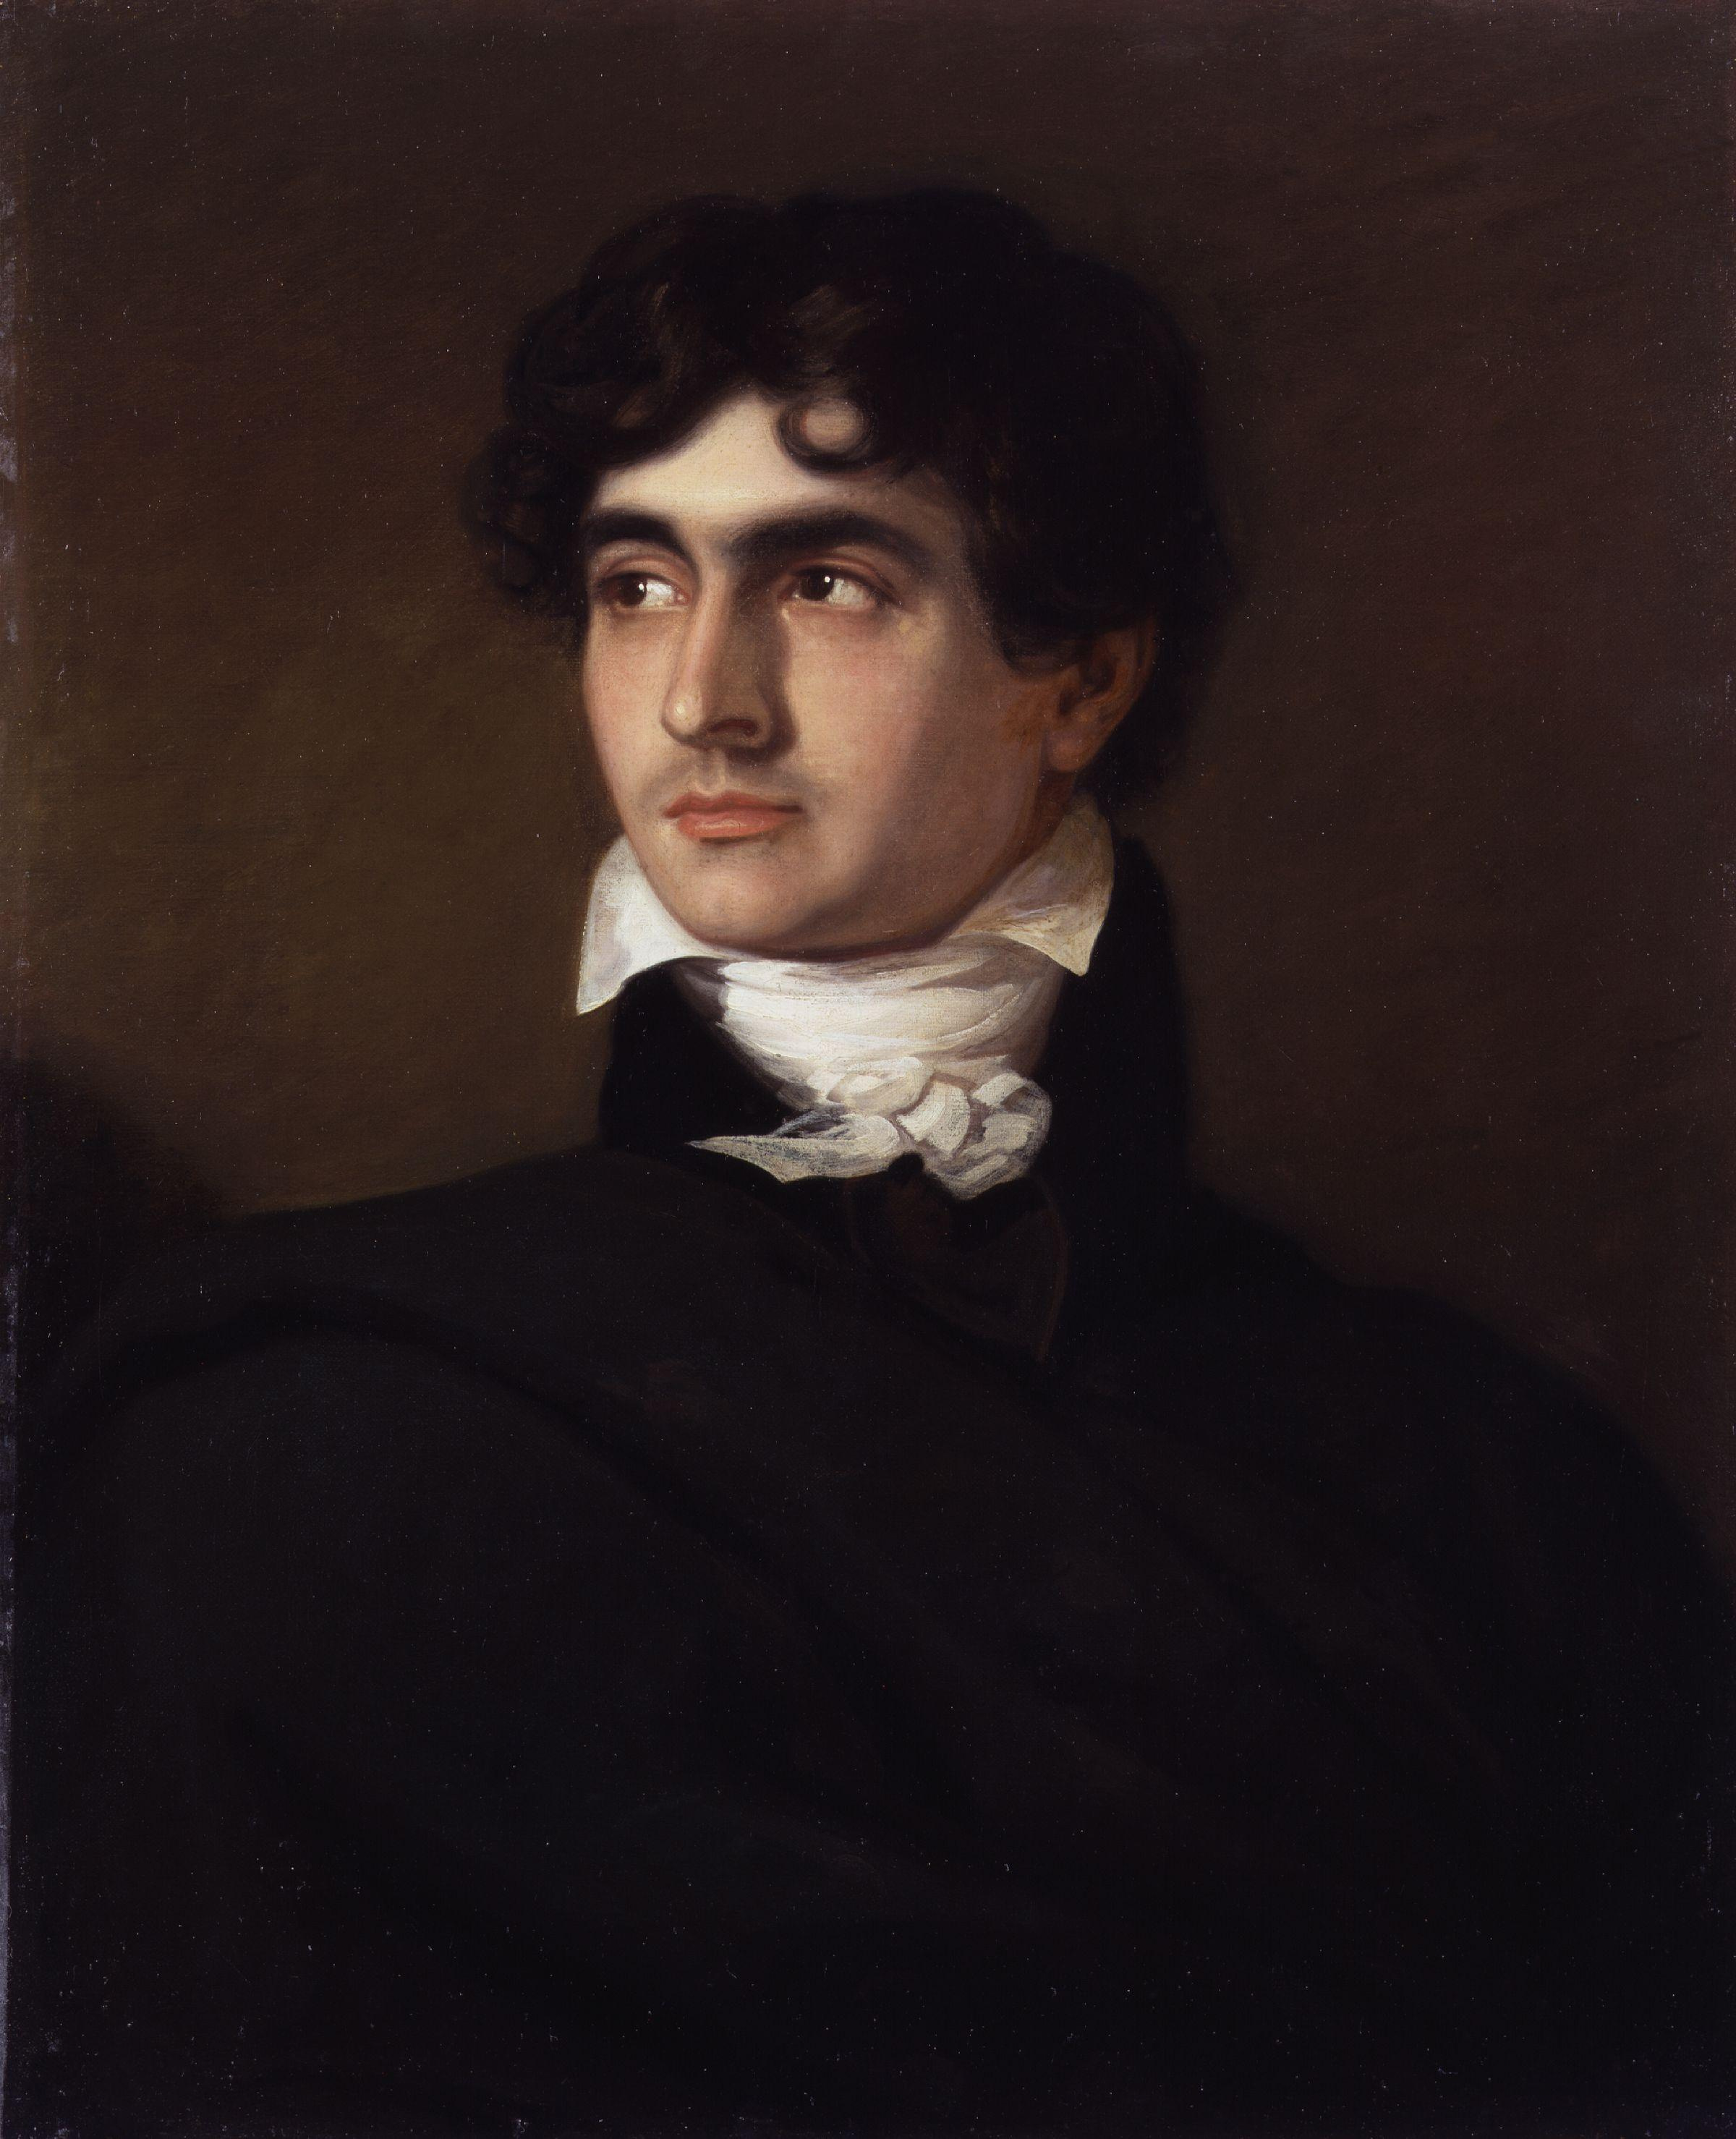 https://upload.wikimedia.org/wikipedia/commons/1/1c/John_William_Polidori_by_F.G._Gainsford.jpg